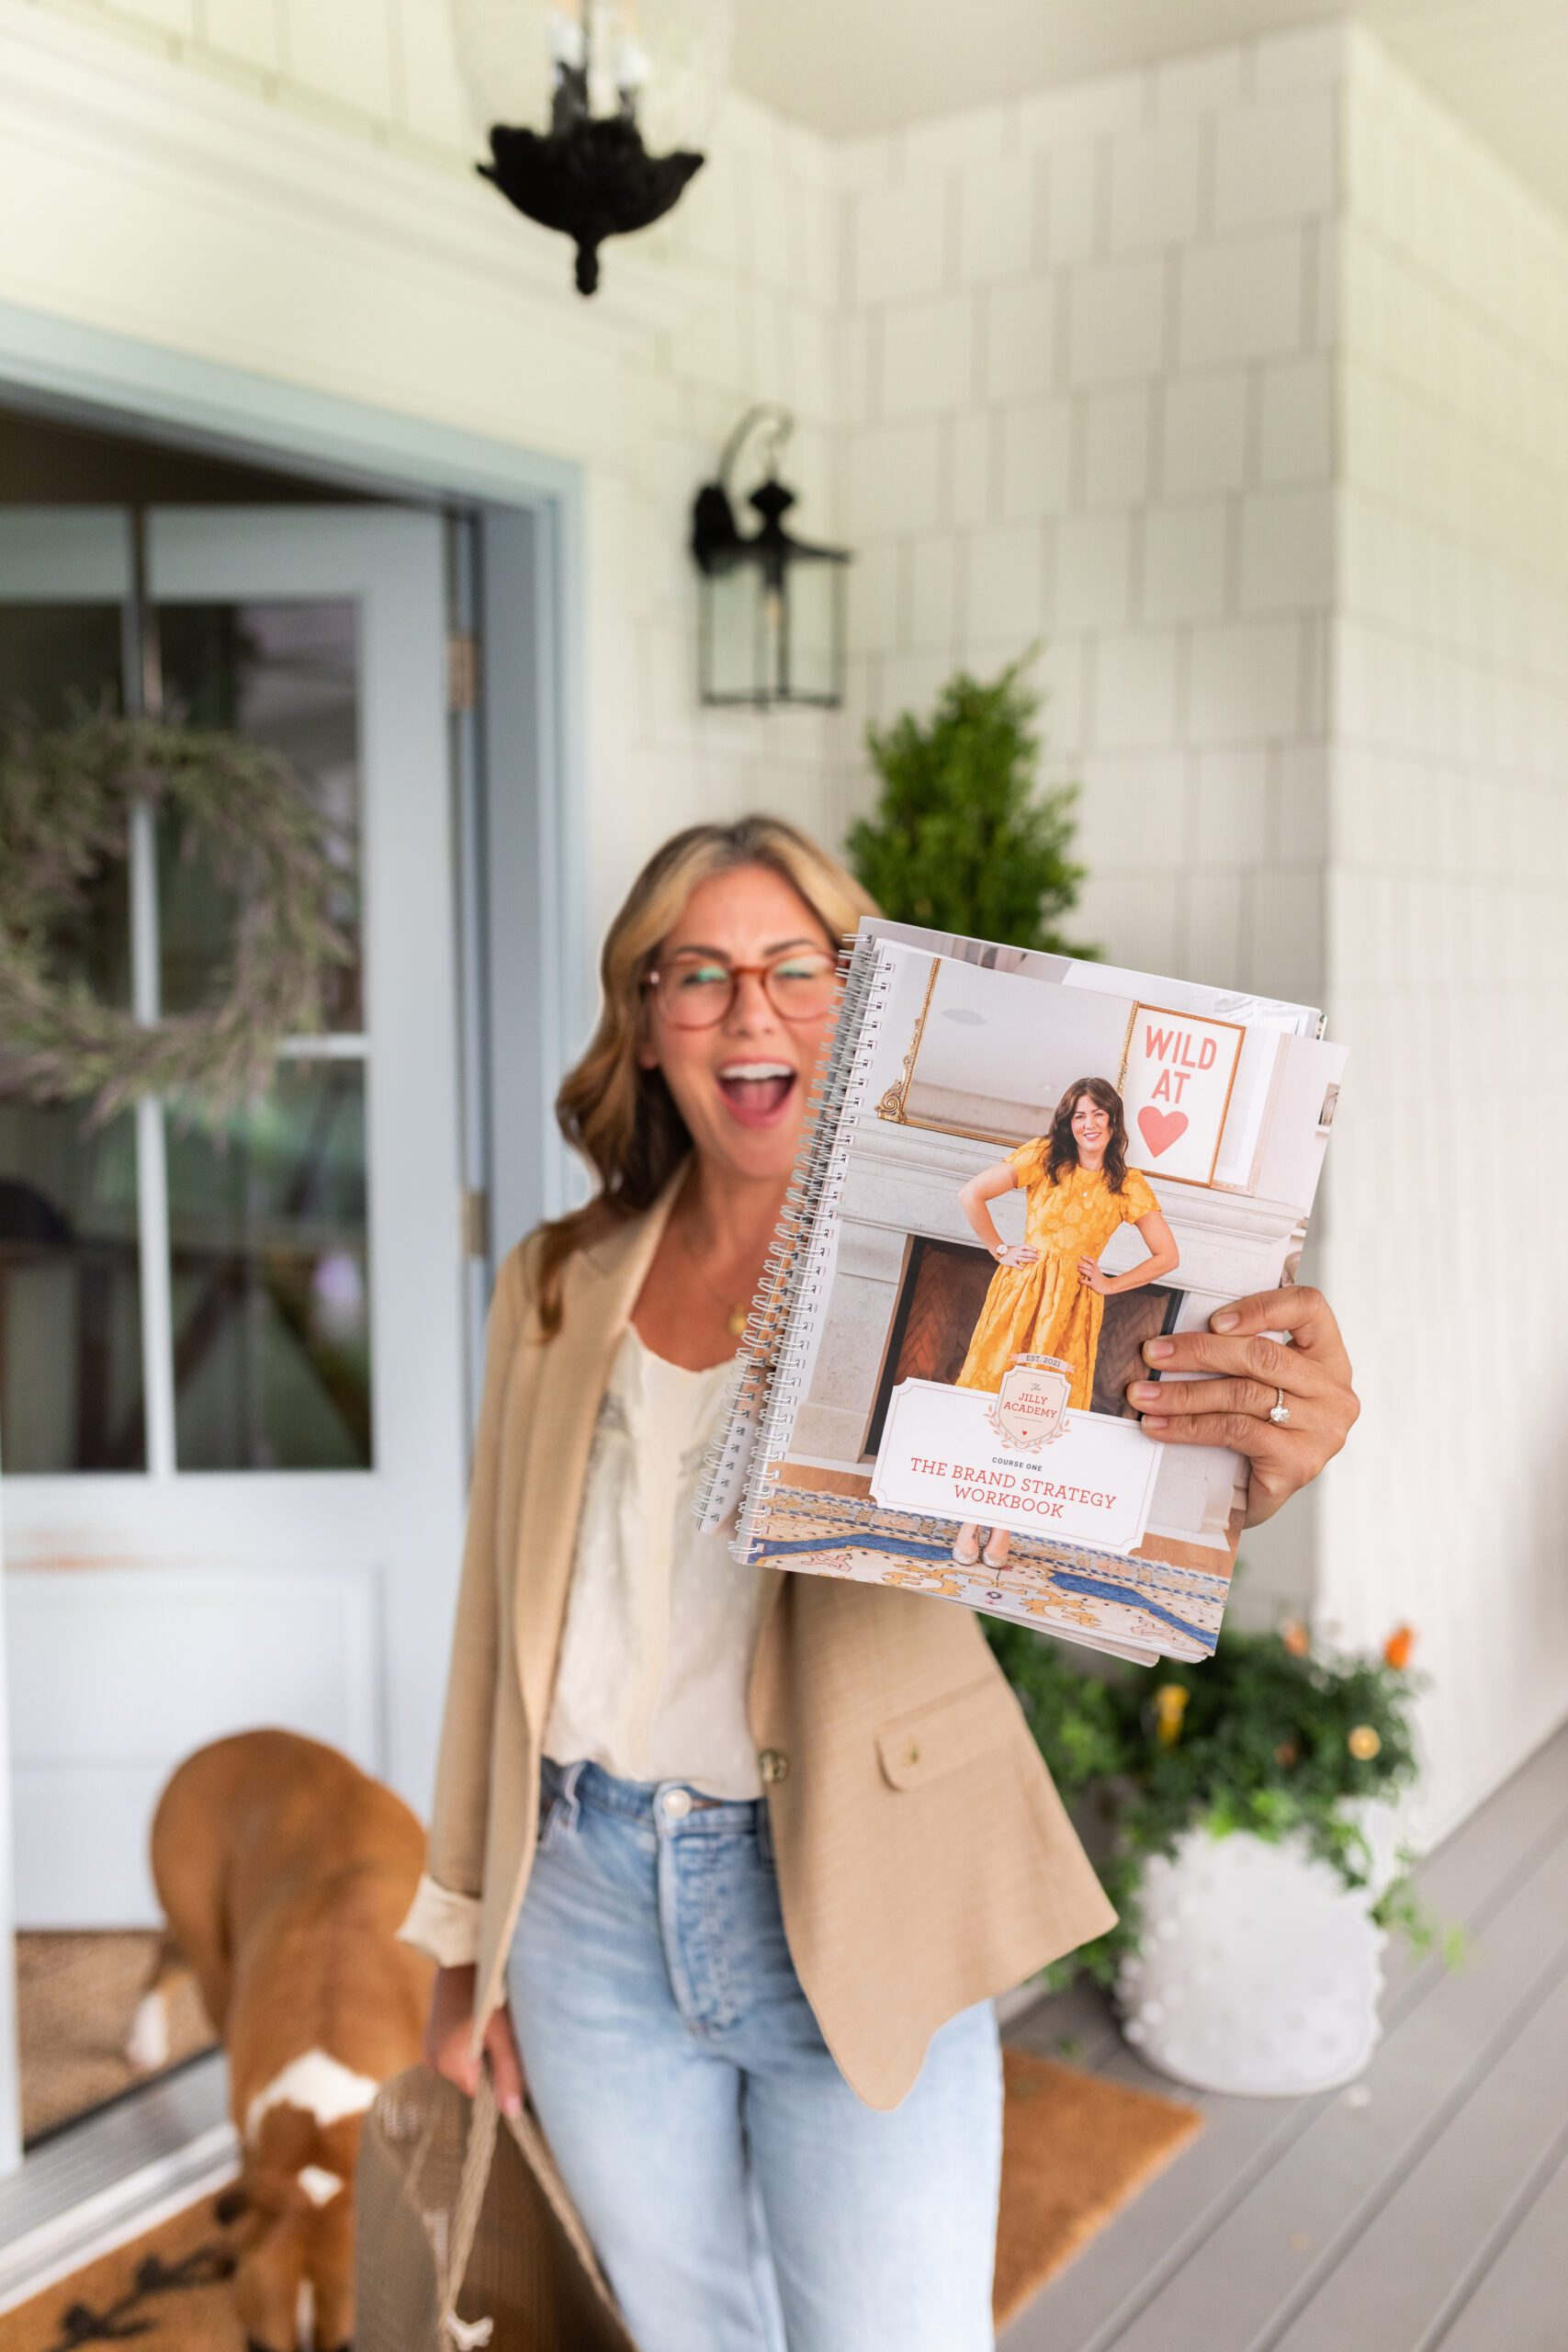 Jillian Harris on her front porch showing excitement for The Jilly Academy's Fall Semester, holding the workbook.